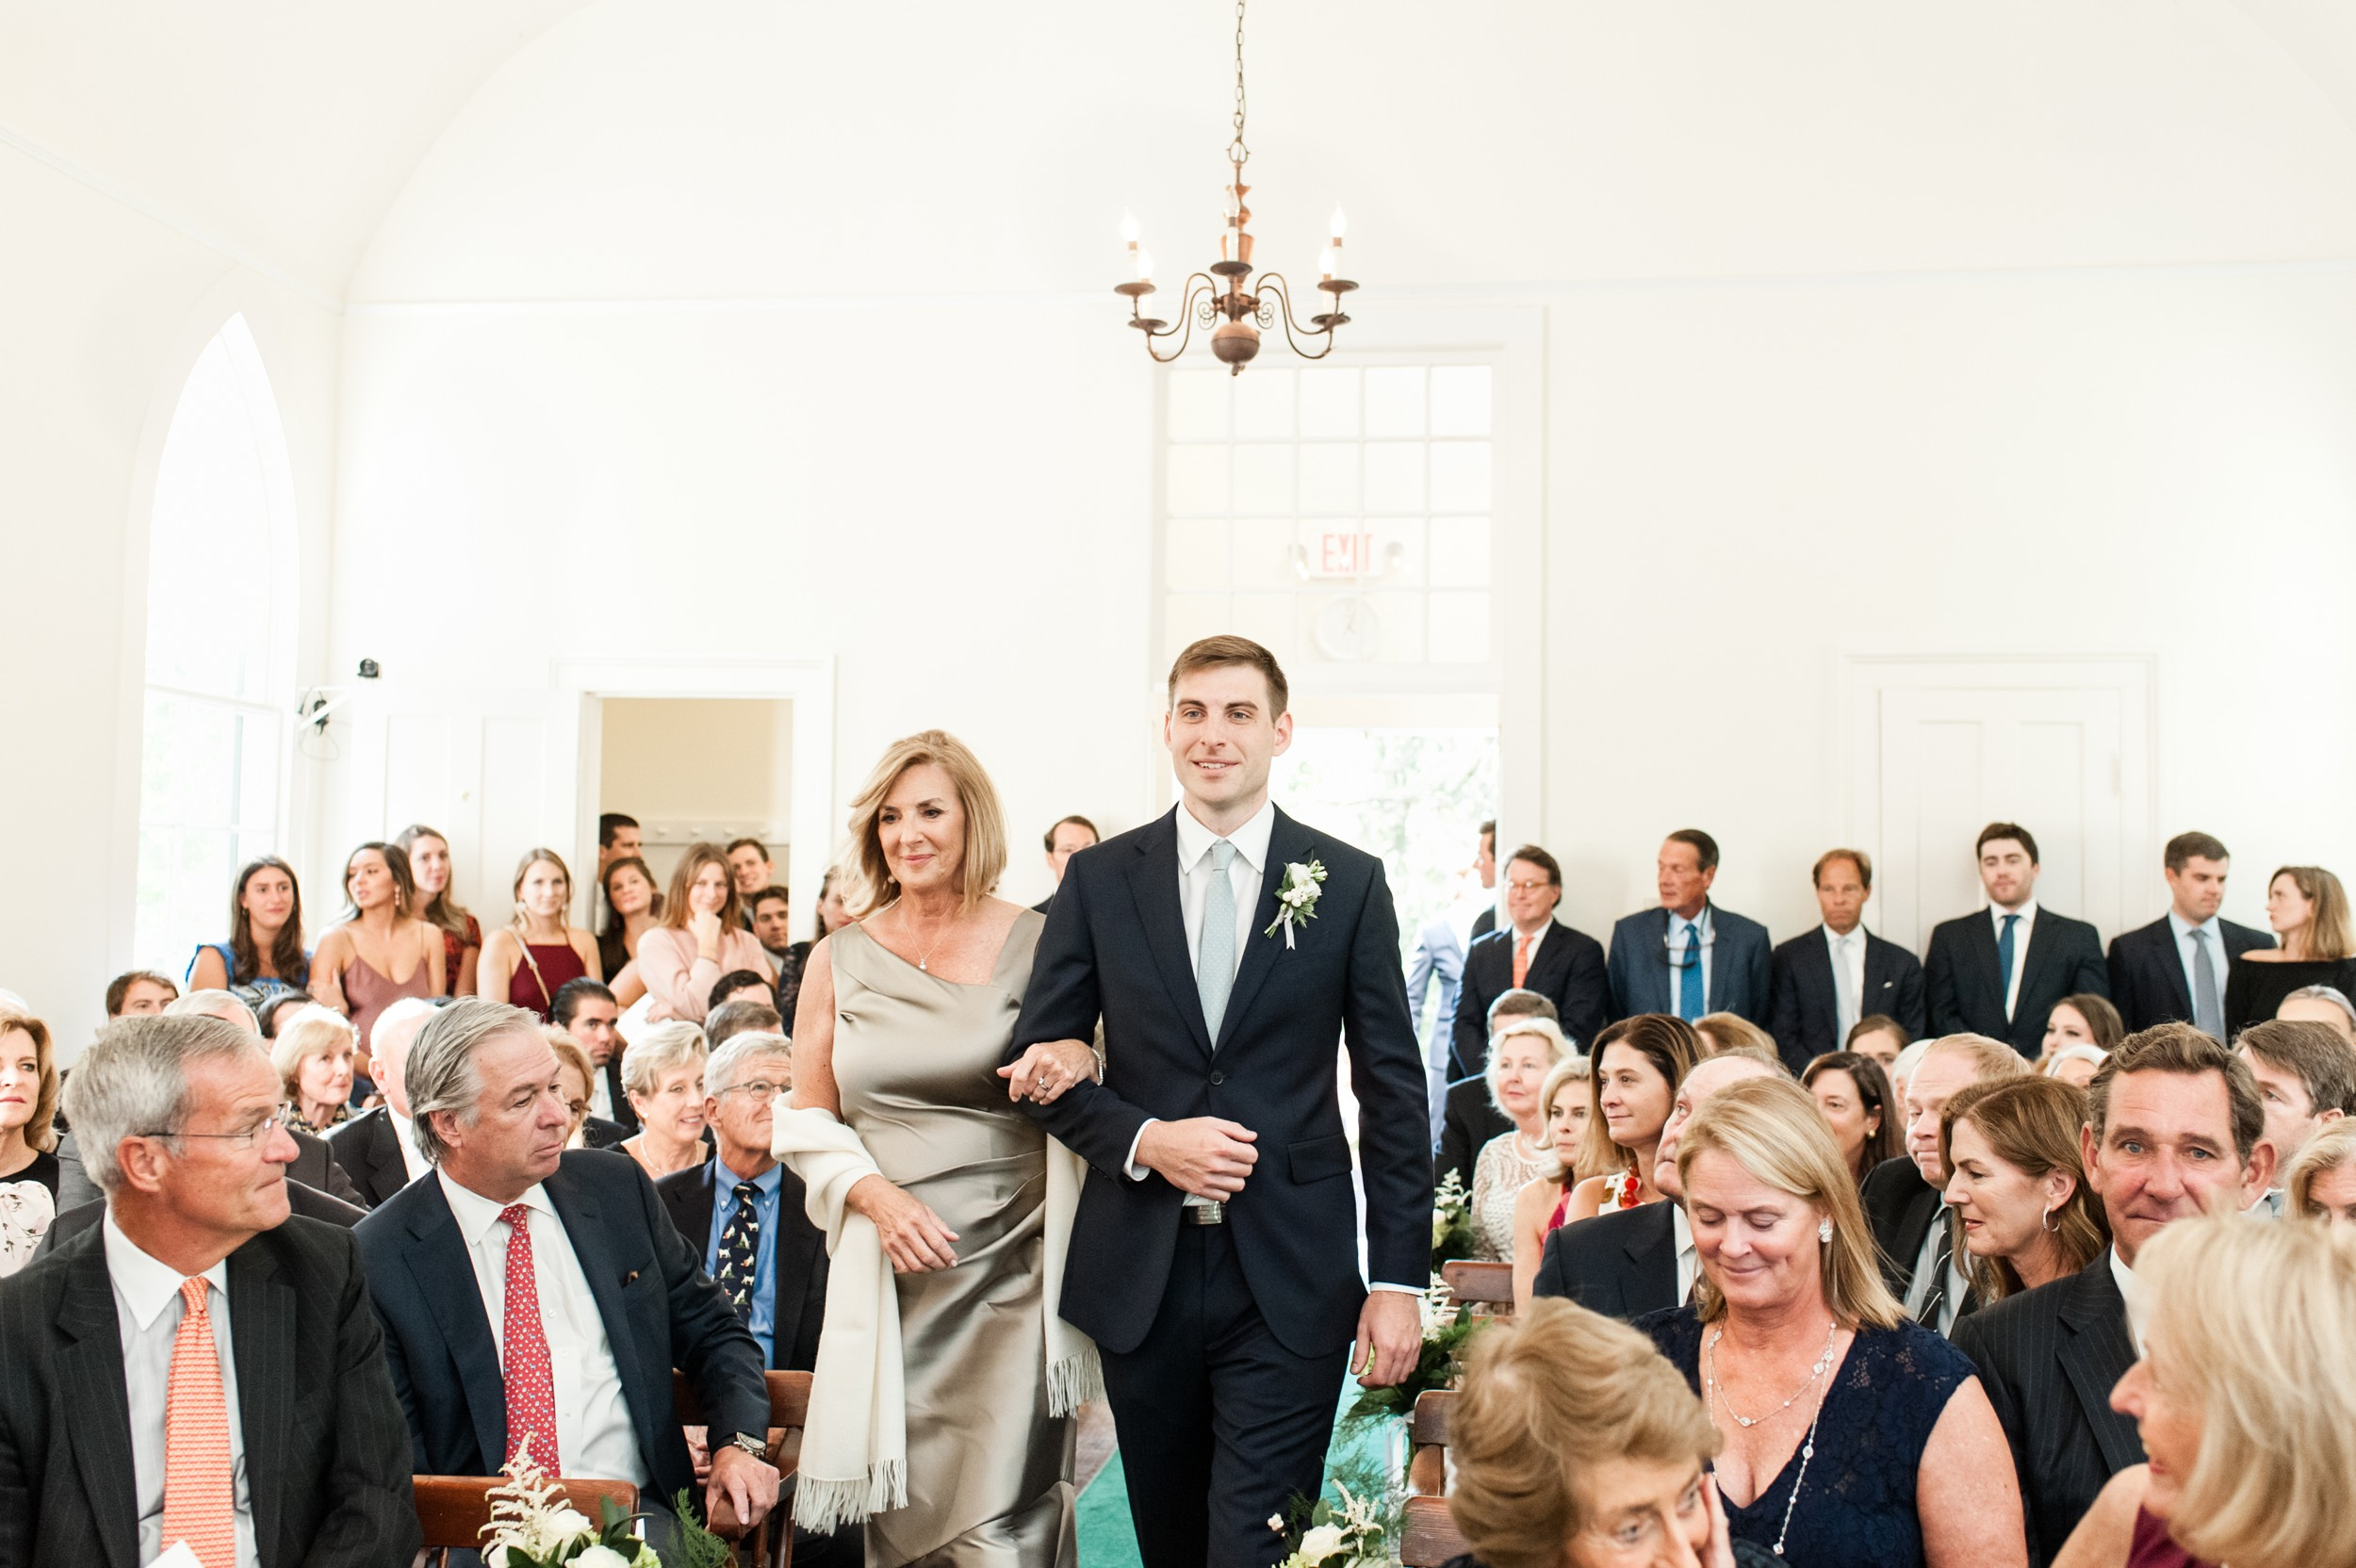 Wee Burn Beach Club Wedding Darien CT Talmidge Hill Community Church Wedding Ceremony groom walking down aisle with mom